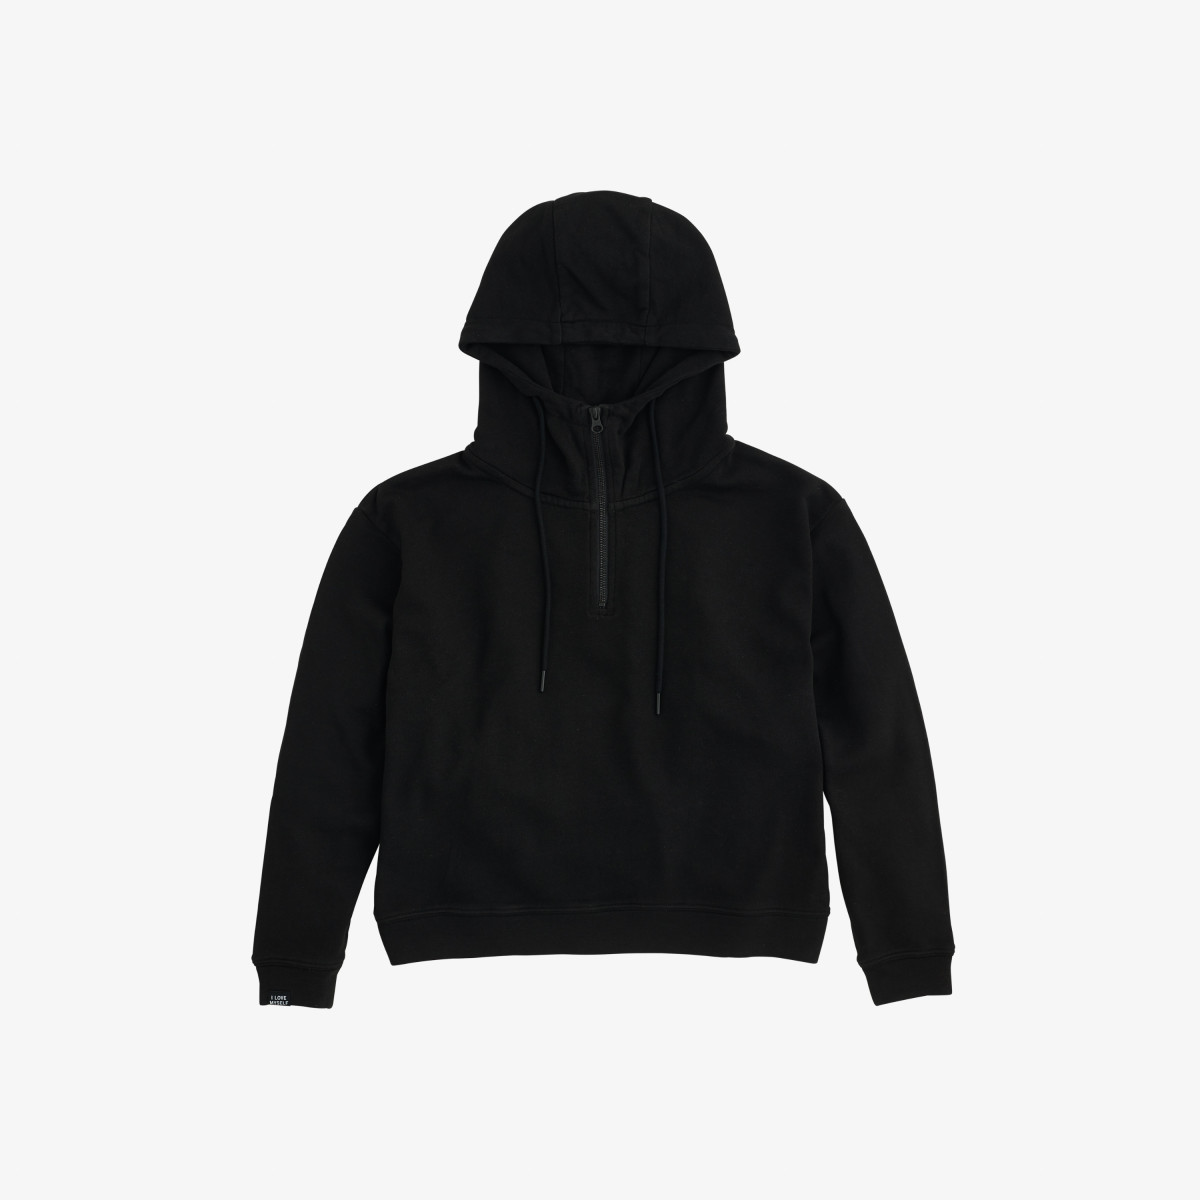 HOOD BACK PRINT COTTON FL NERO